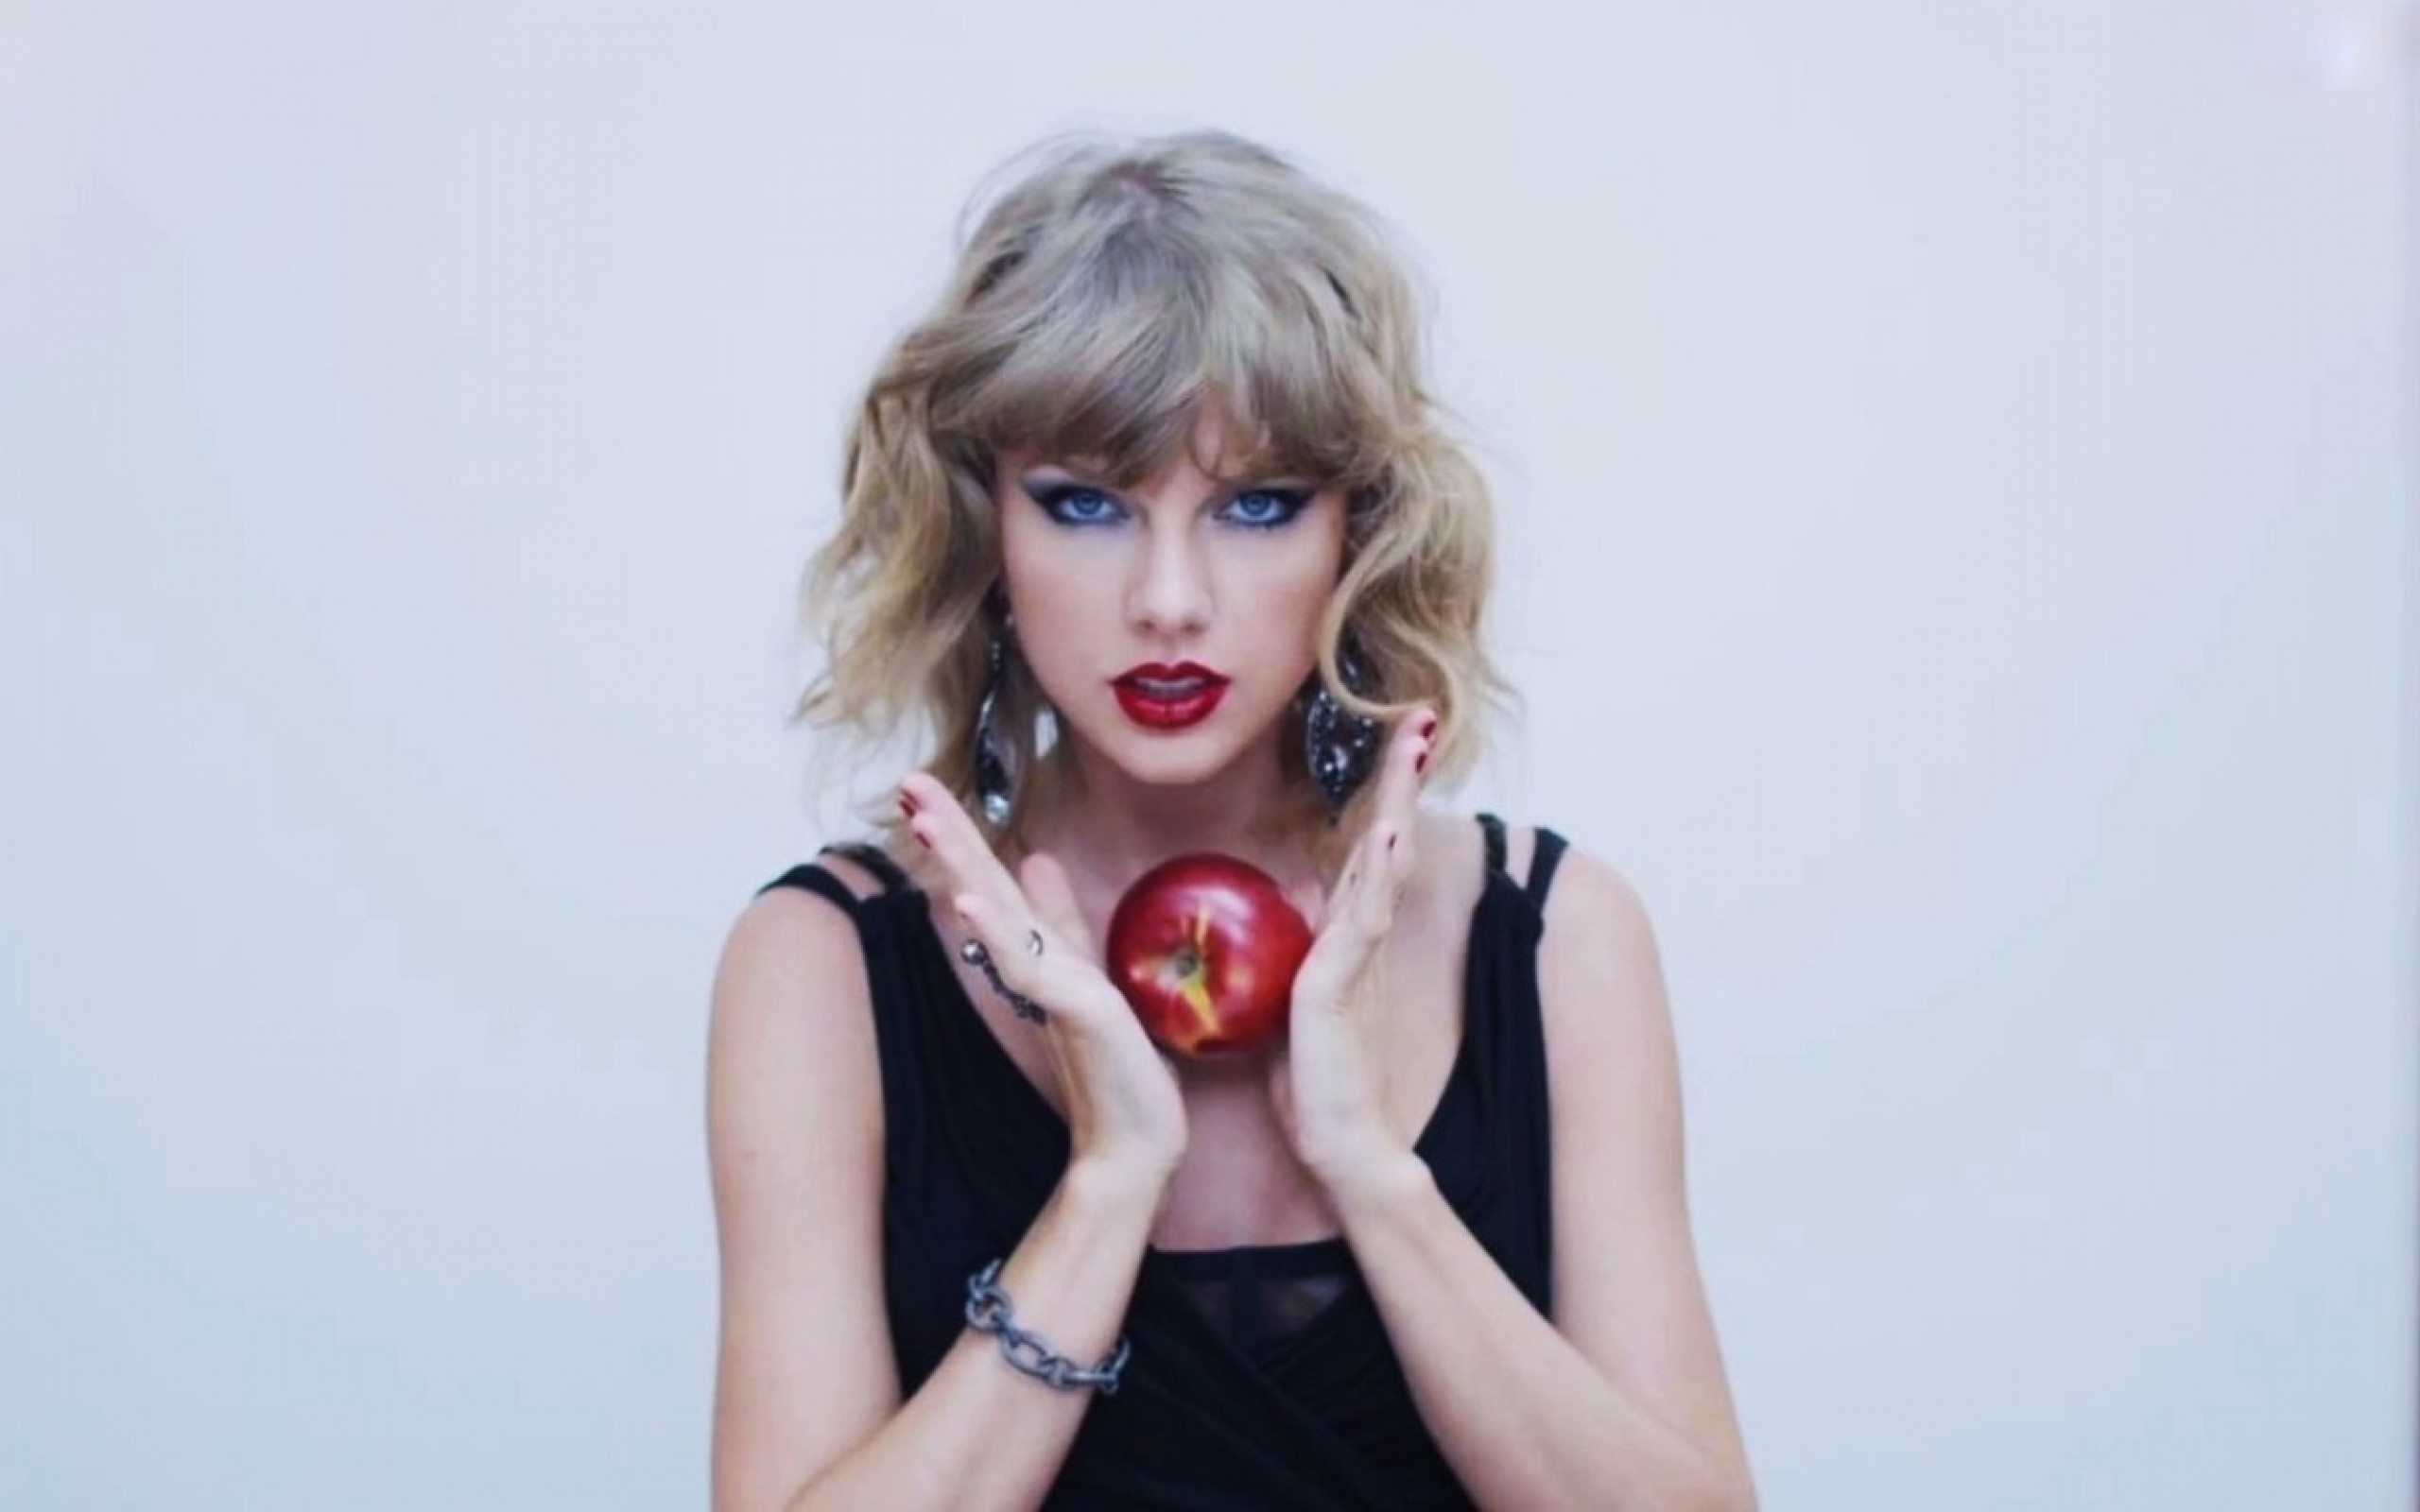 Taylor Swift 2015 Wallpapers Pictures Images 2560x1600